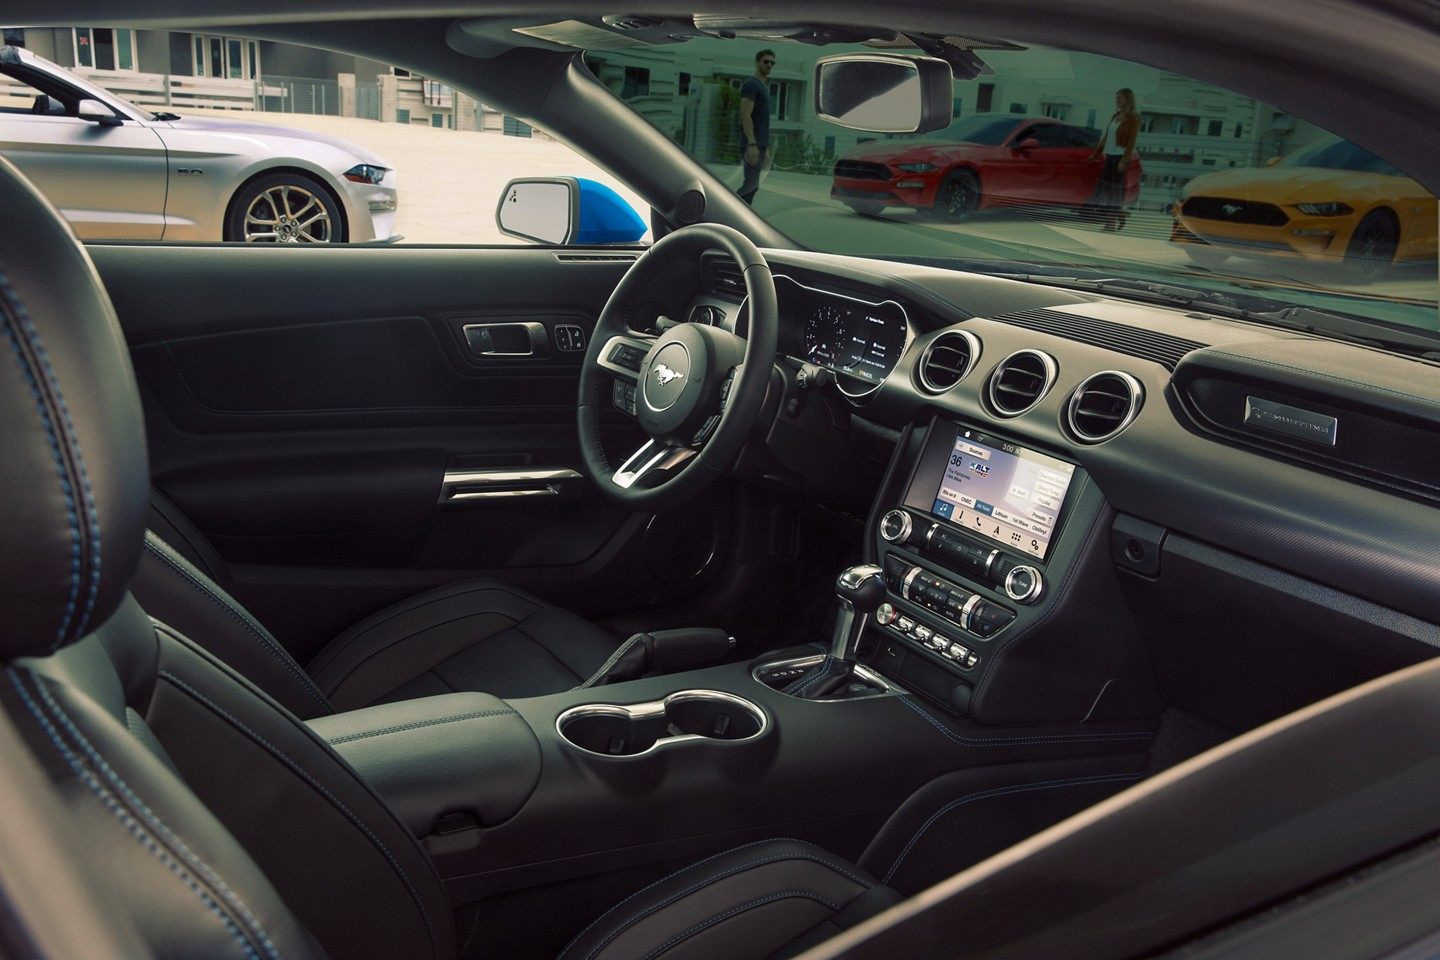 2018 Ford Mustang interior view